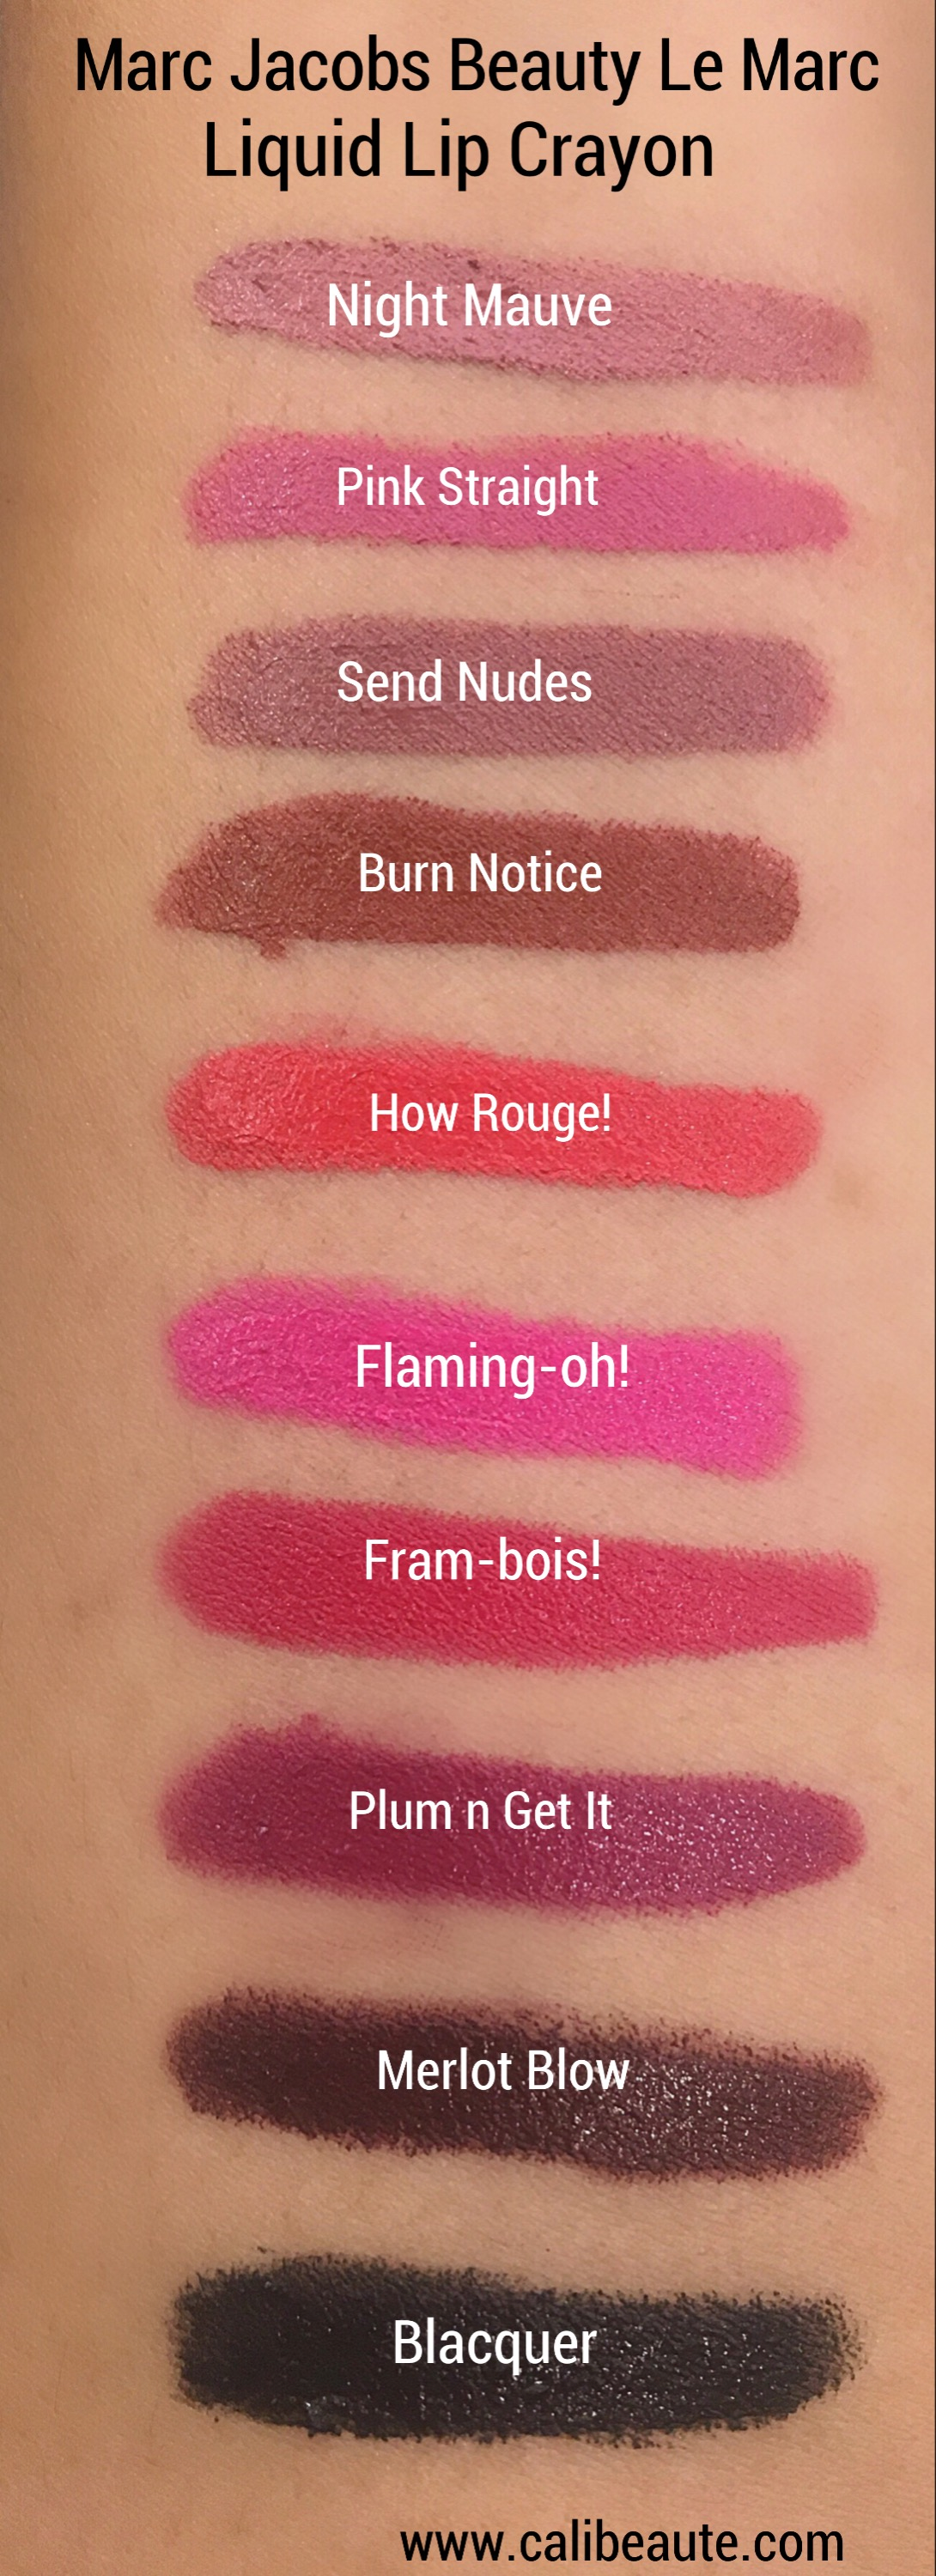 Liquid Lipstick – How to Apply